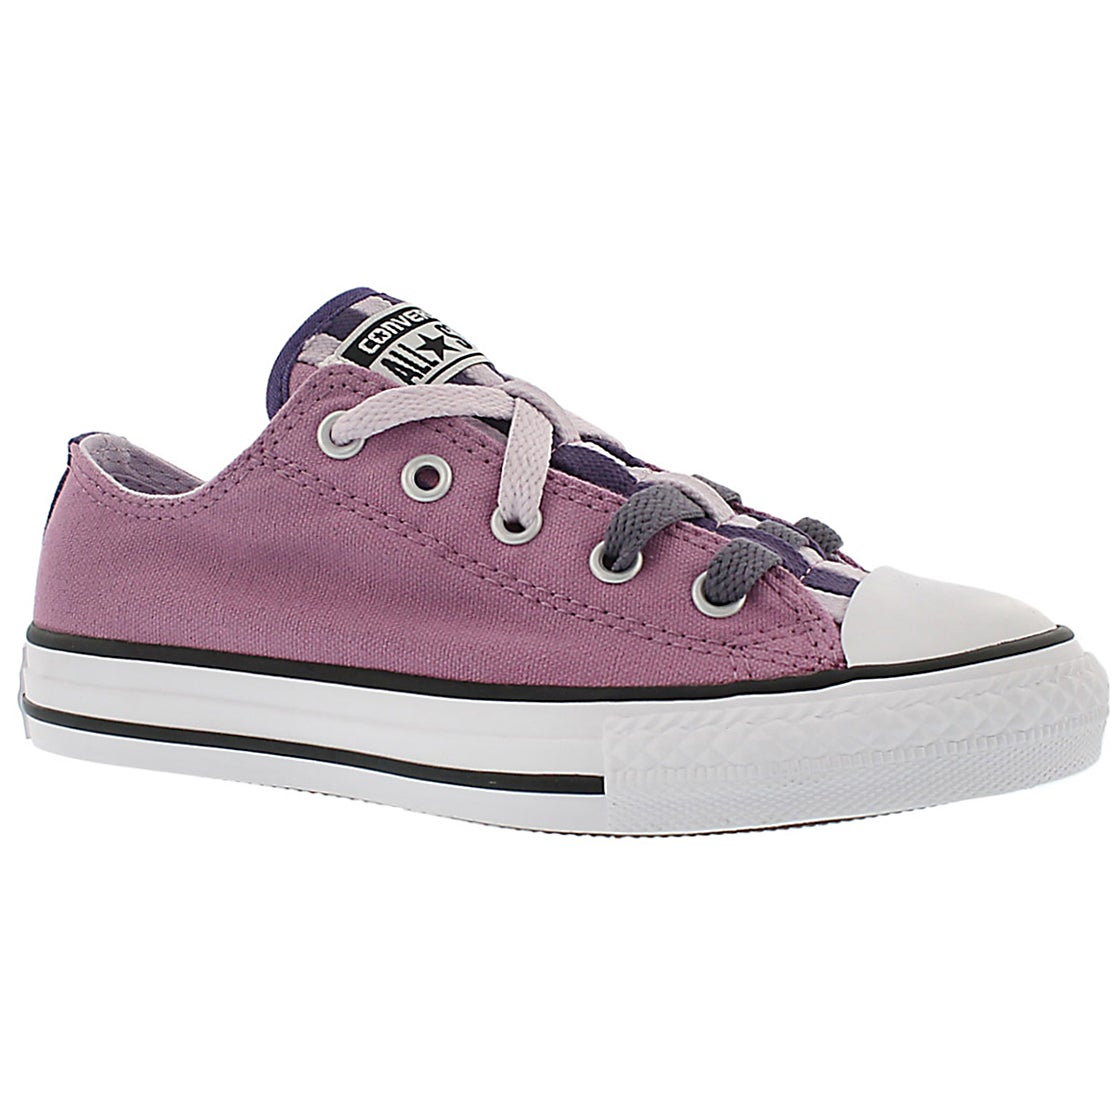 Girls' CT ALL STAR LOOPHOLES CANVAS prple sneakers